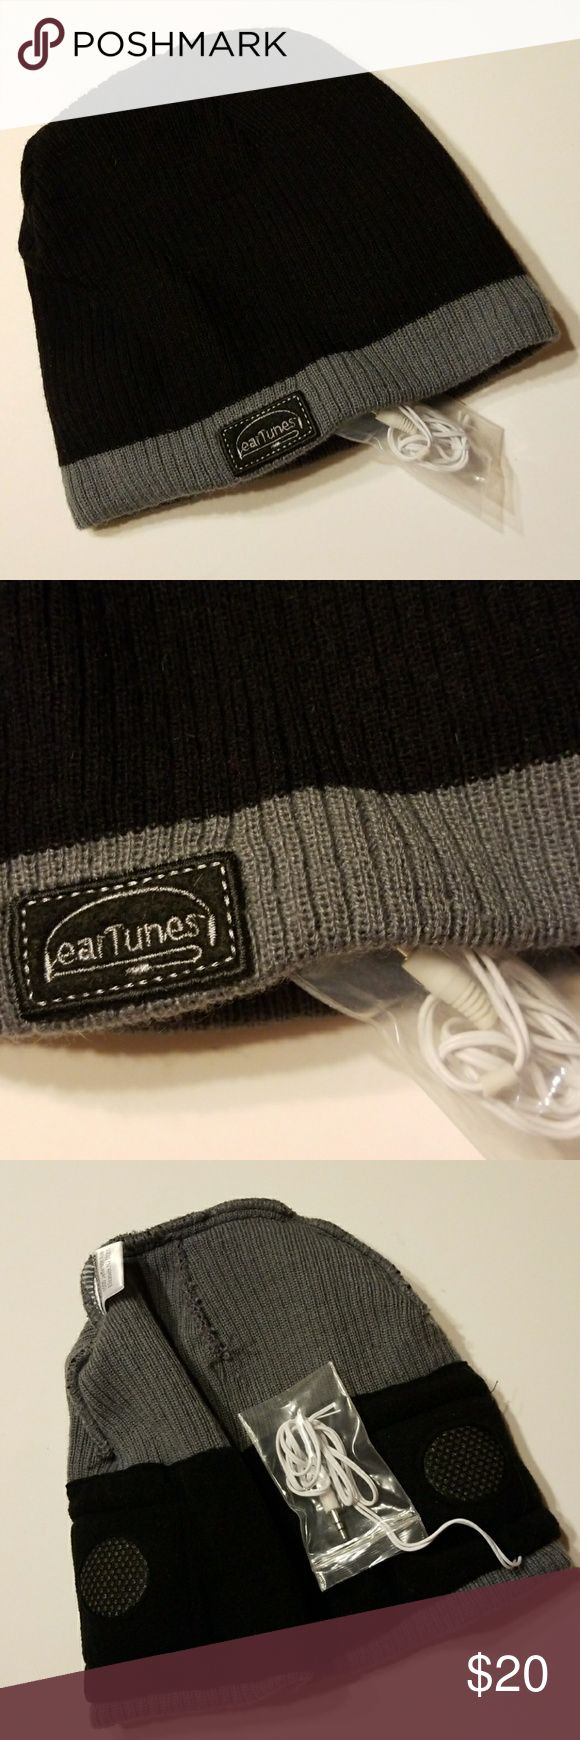 Ear Tunes Knit Hat Wired With Built in Speakers  ! BRAND NEW NEVER WORN  WORKS GREAT !!!  Black and Gray Knit Ski Hat  Fleece Lined Banding For Extra Warmth & Comfort With Built In Speakers! Just Plug in to your device ! Speaker for Each Ear Is Padded & Lined  No more Ear Buds to Fall Out!!! Unisex  Be Sure To Check Out The Rest of My Listings For Additional Mens Women's Kids Winterwear Scarves Mittens Coats Hats Boots Socks  ✔ BUNDLE UP FOR SAVINGS  ✔ Ear Tunes Accessories Hats